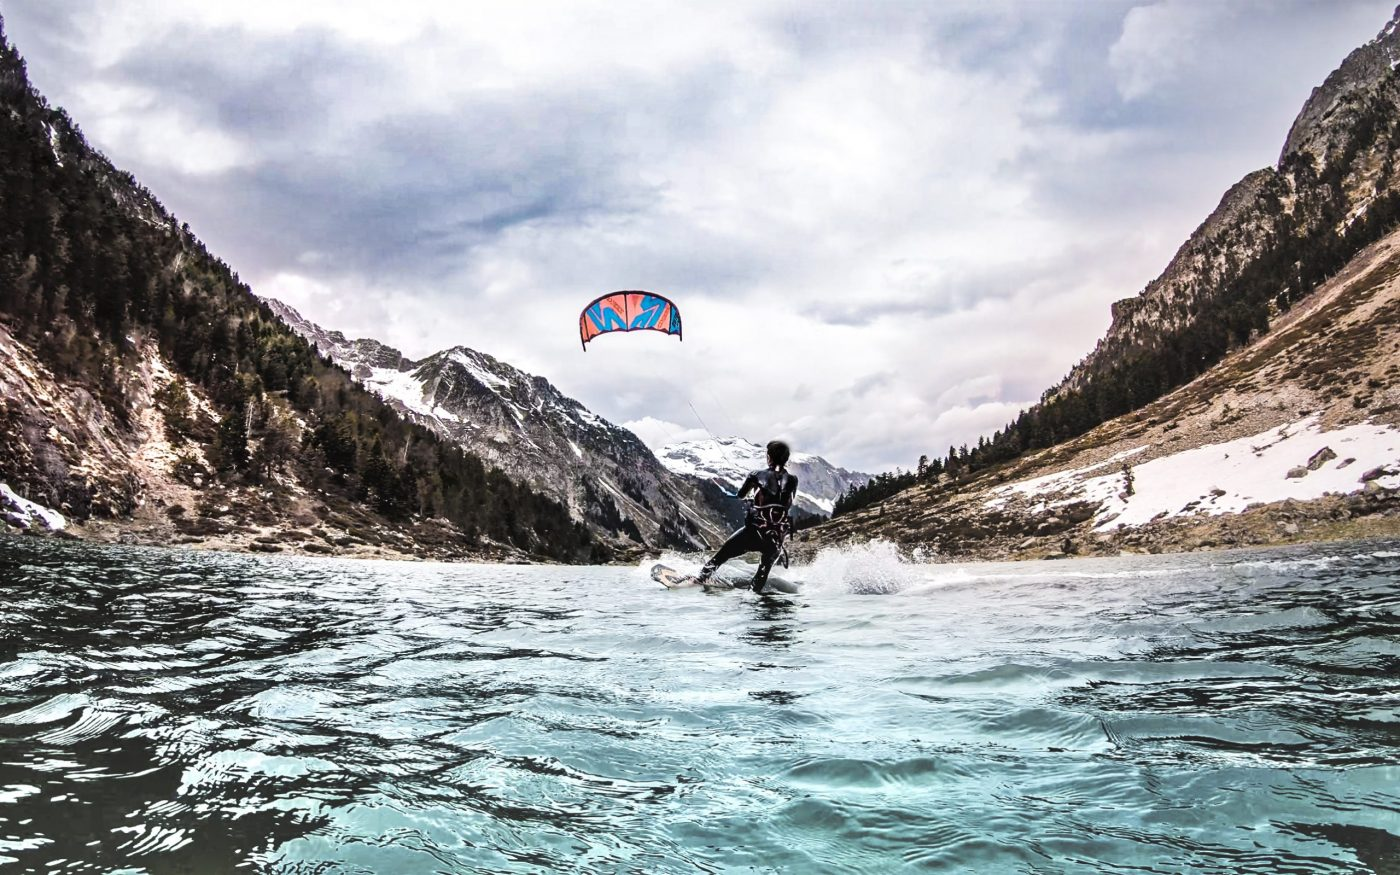 Riding to Explore - kite surfing in the mountains